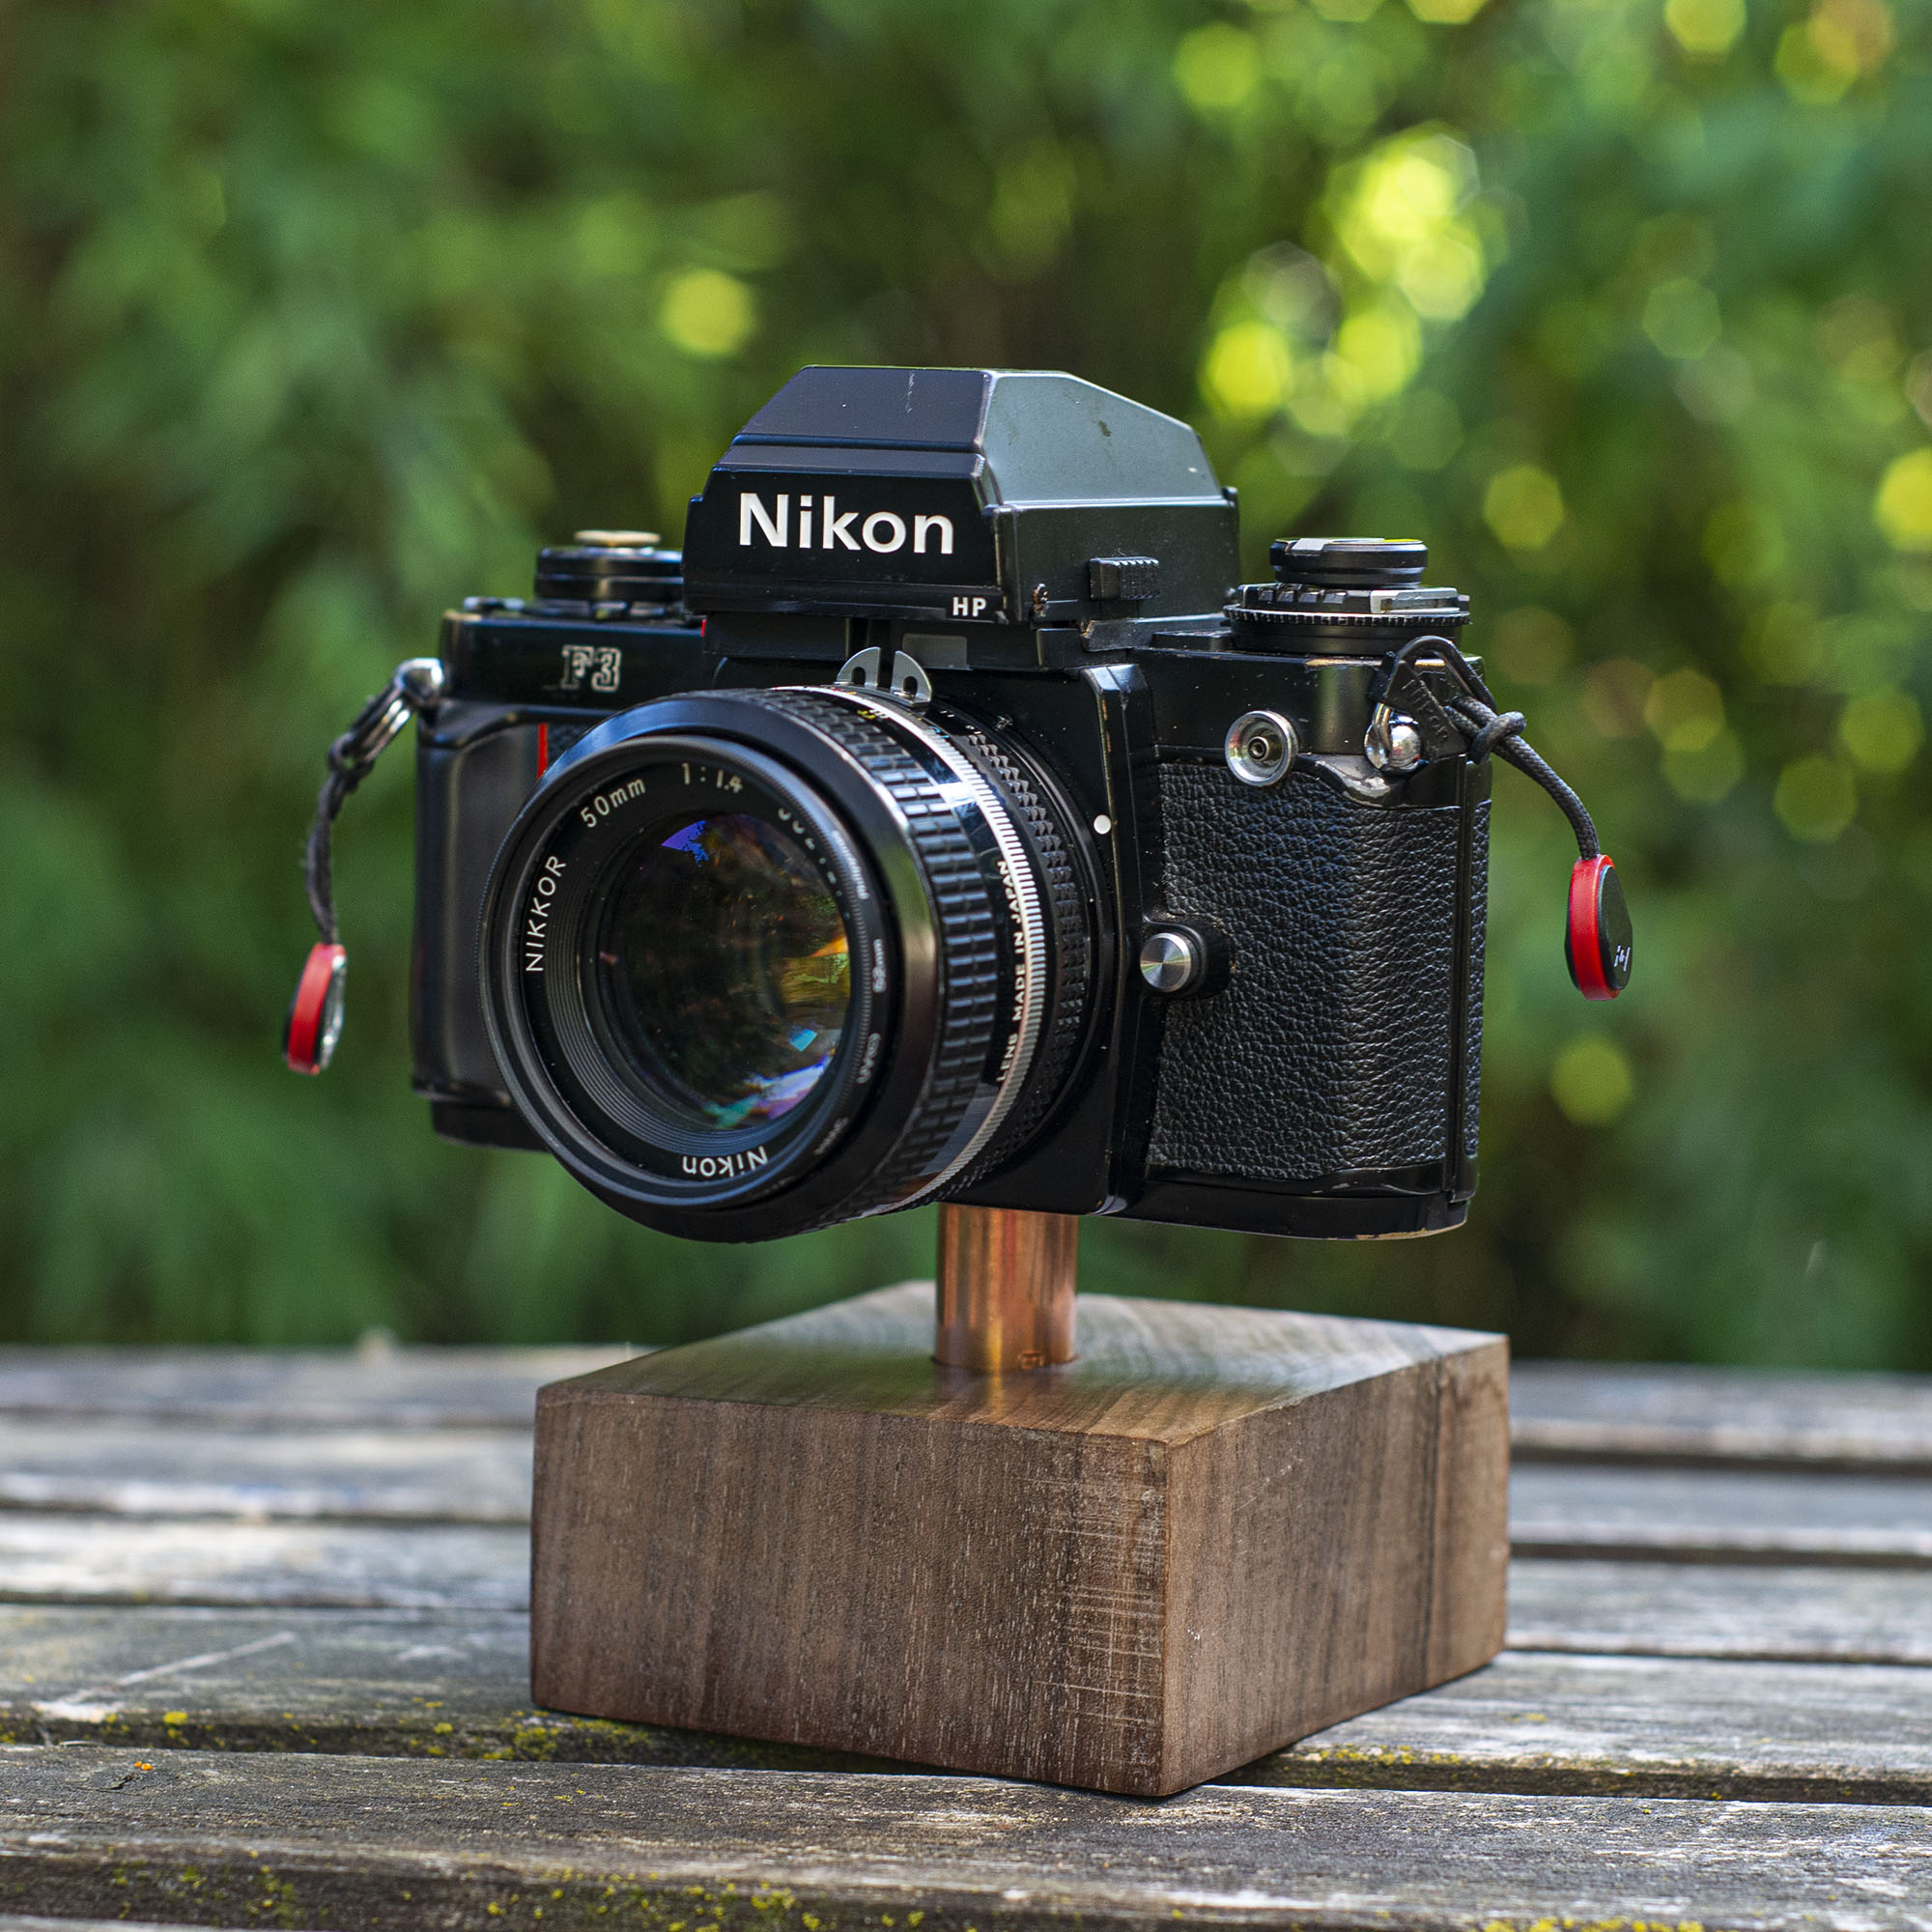 Nikon F3 with a 50mm f/1.4 lens